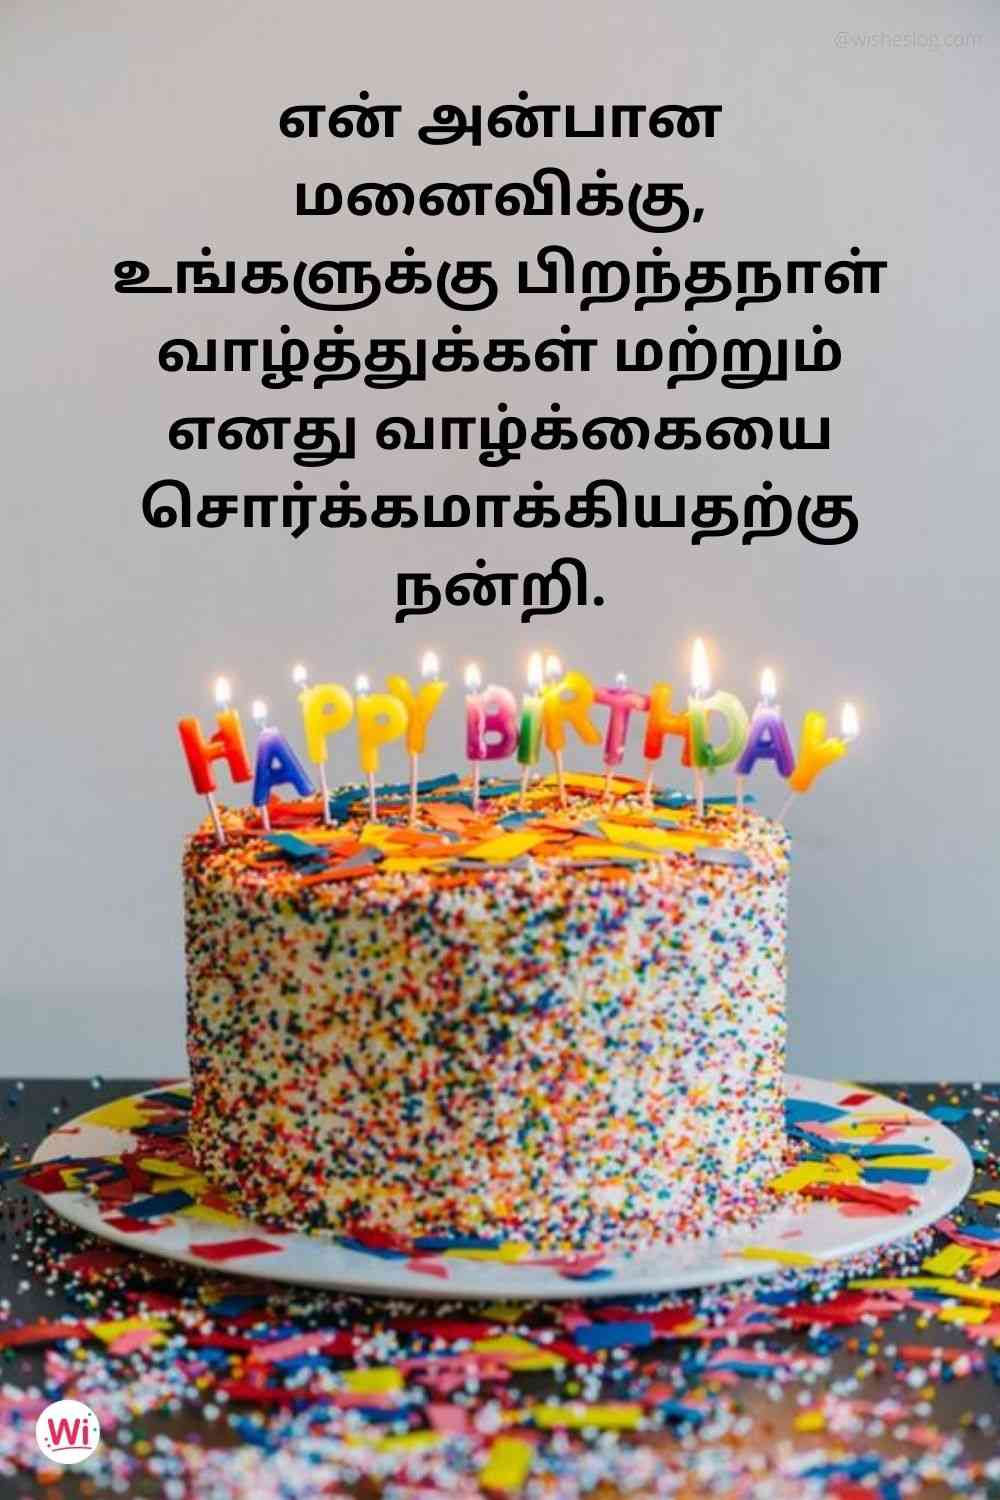 happy birthday images in tamil for wife